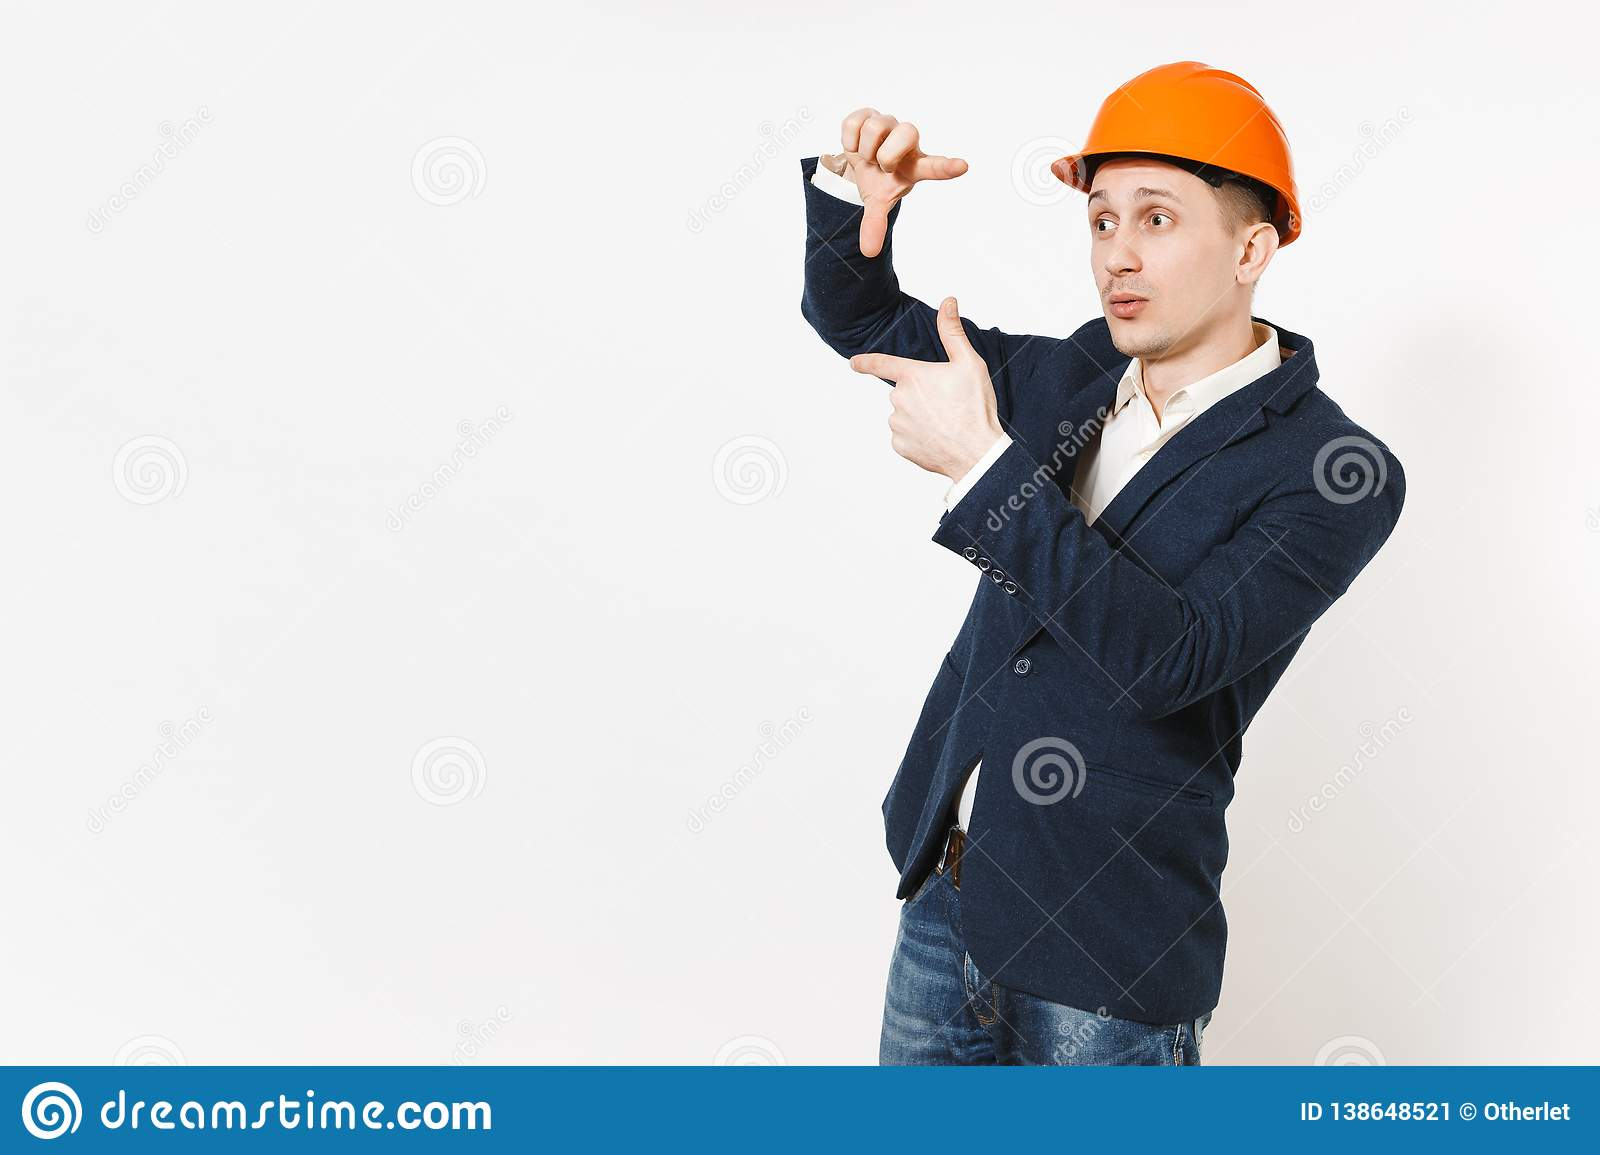 Young handsome successful businessman in dark suit, protective construction helmet making hands photo frame gesture